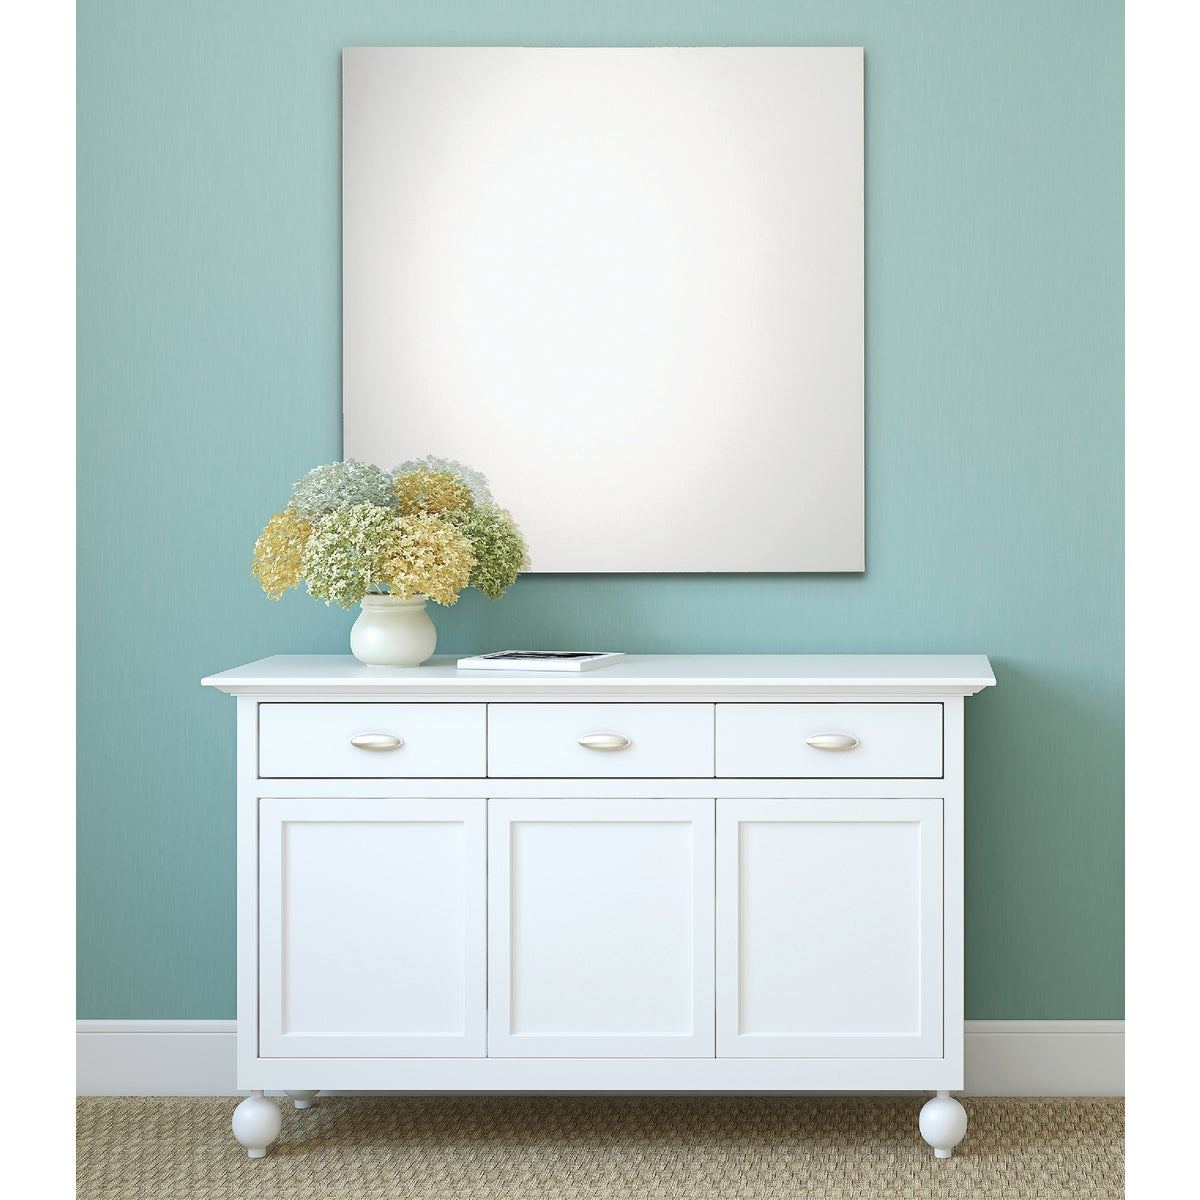 30X36 FMLS POL ED MIRROR - 20-1244 by Home Decor Innovatns